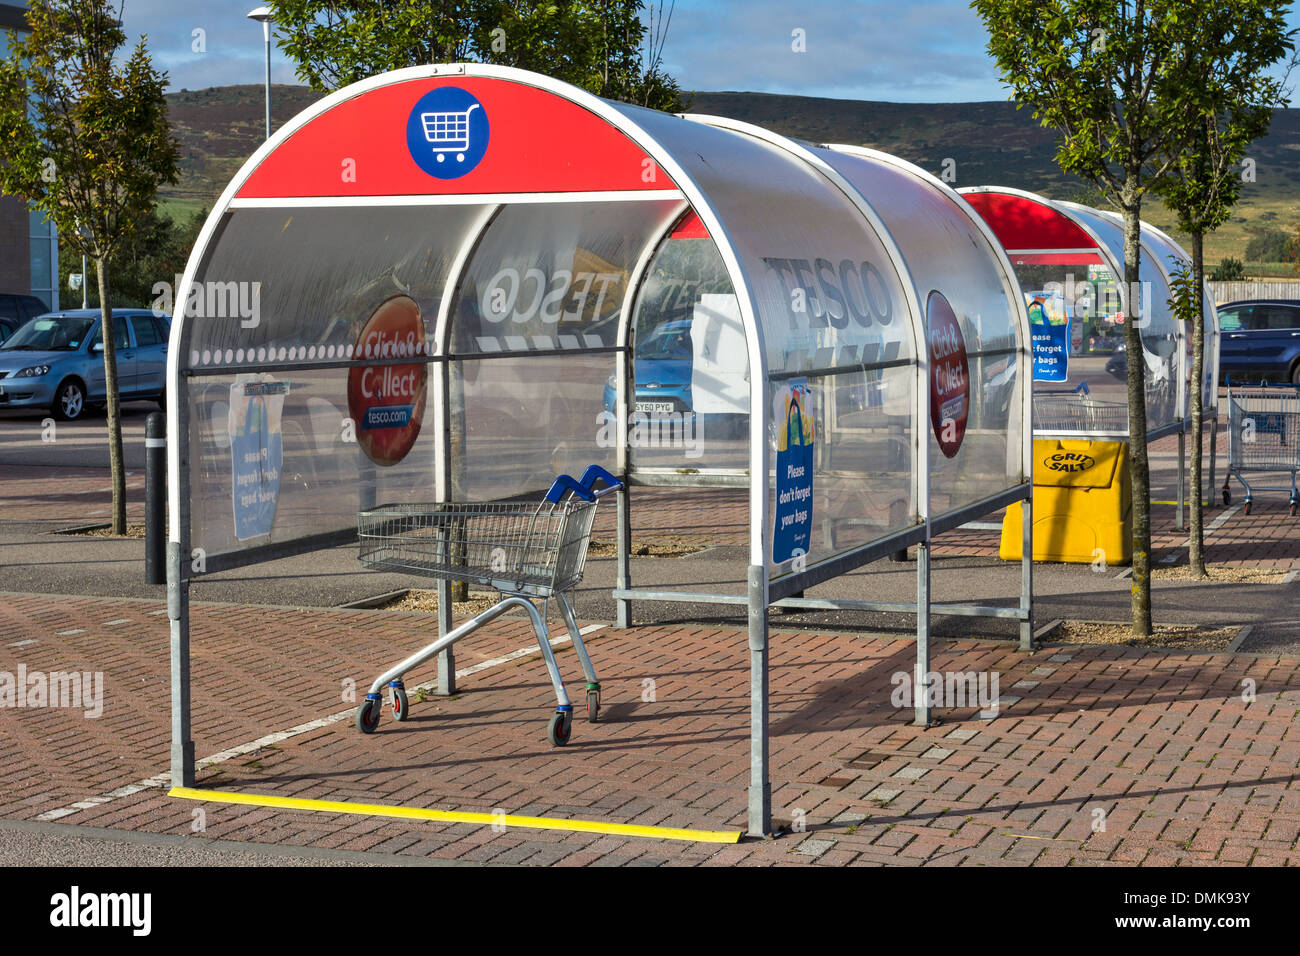 SUPERMARKET TROLLEY COLLECTION STANDS AND CAR PARK - Stock Image